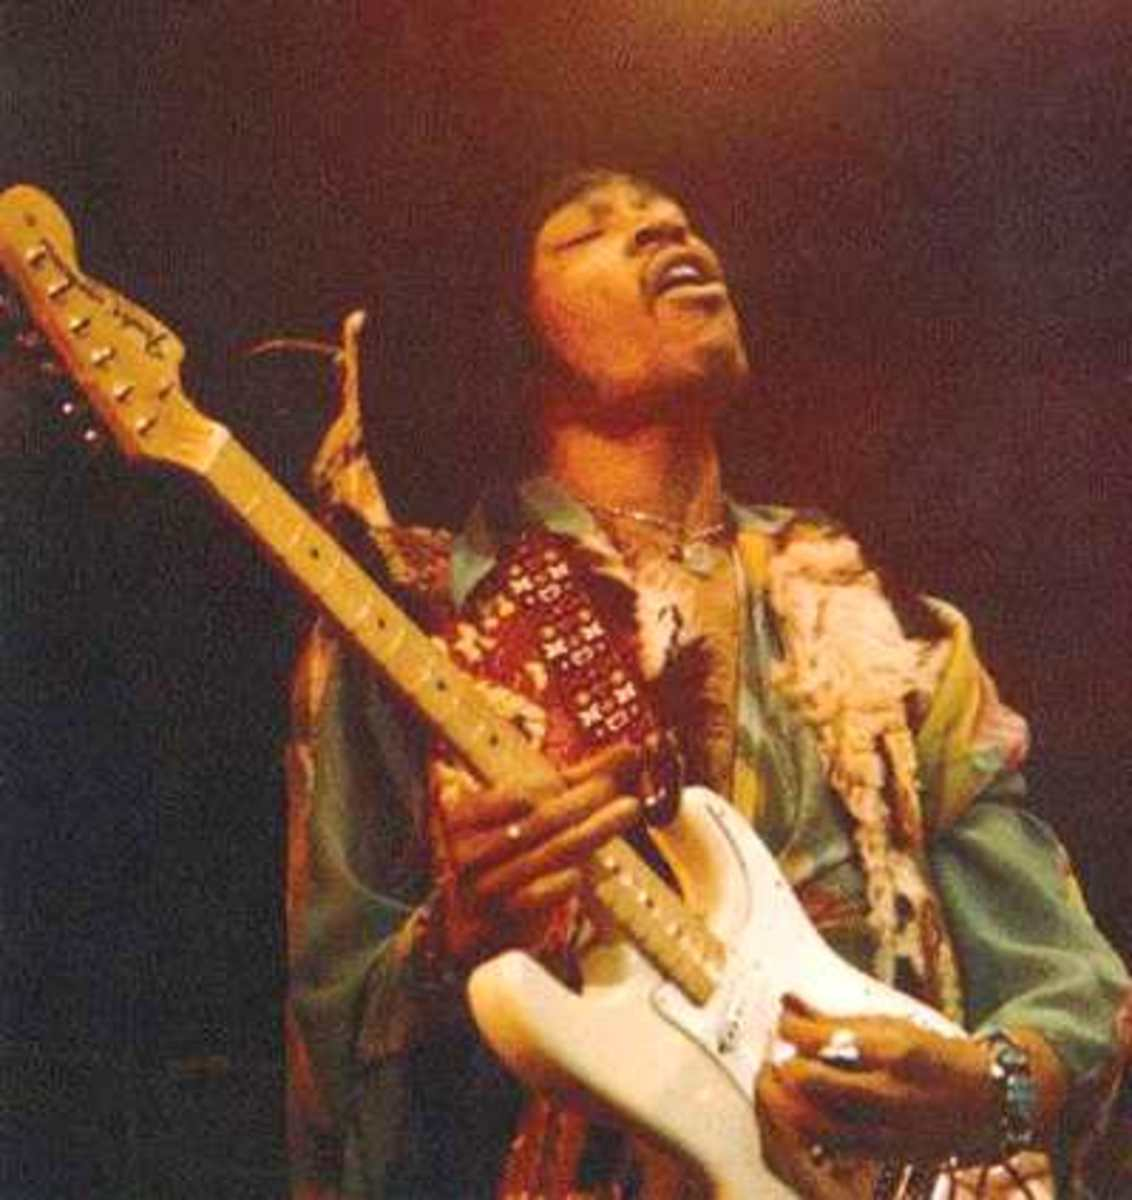 Jimi Hendrix One Of The Greatest Musicians That Ever Lived Hubpages